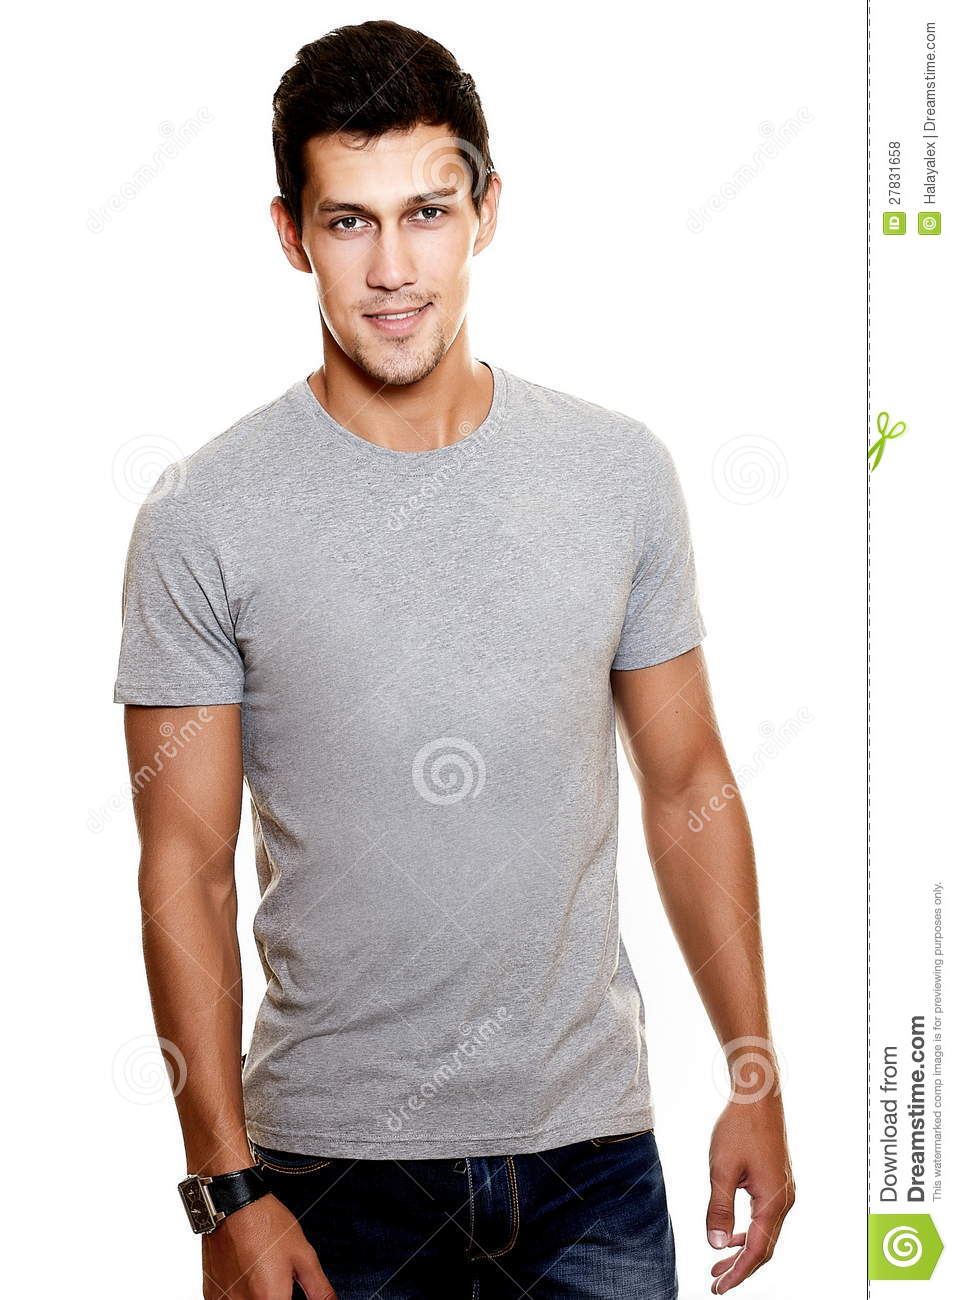 Fashion Stylish Young Man Stock Photo Image Of Look - 27831658-3239